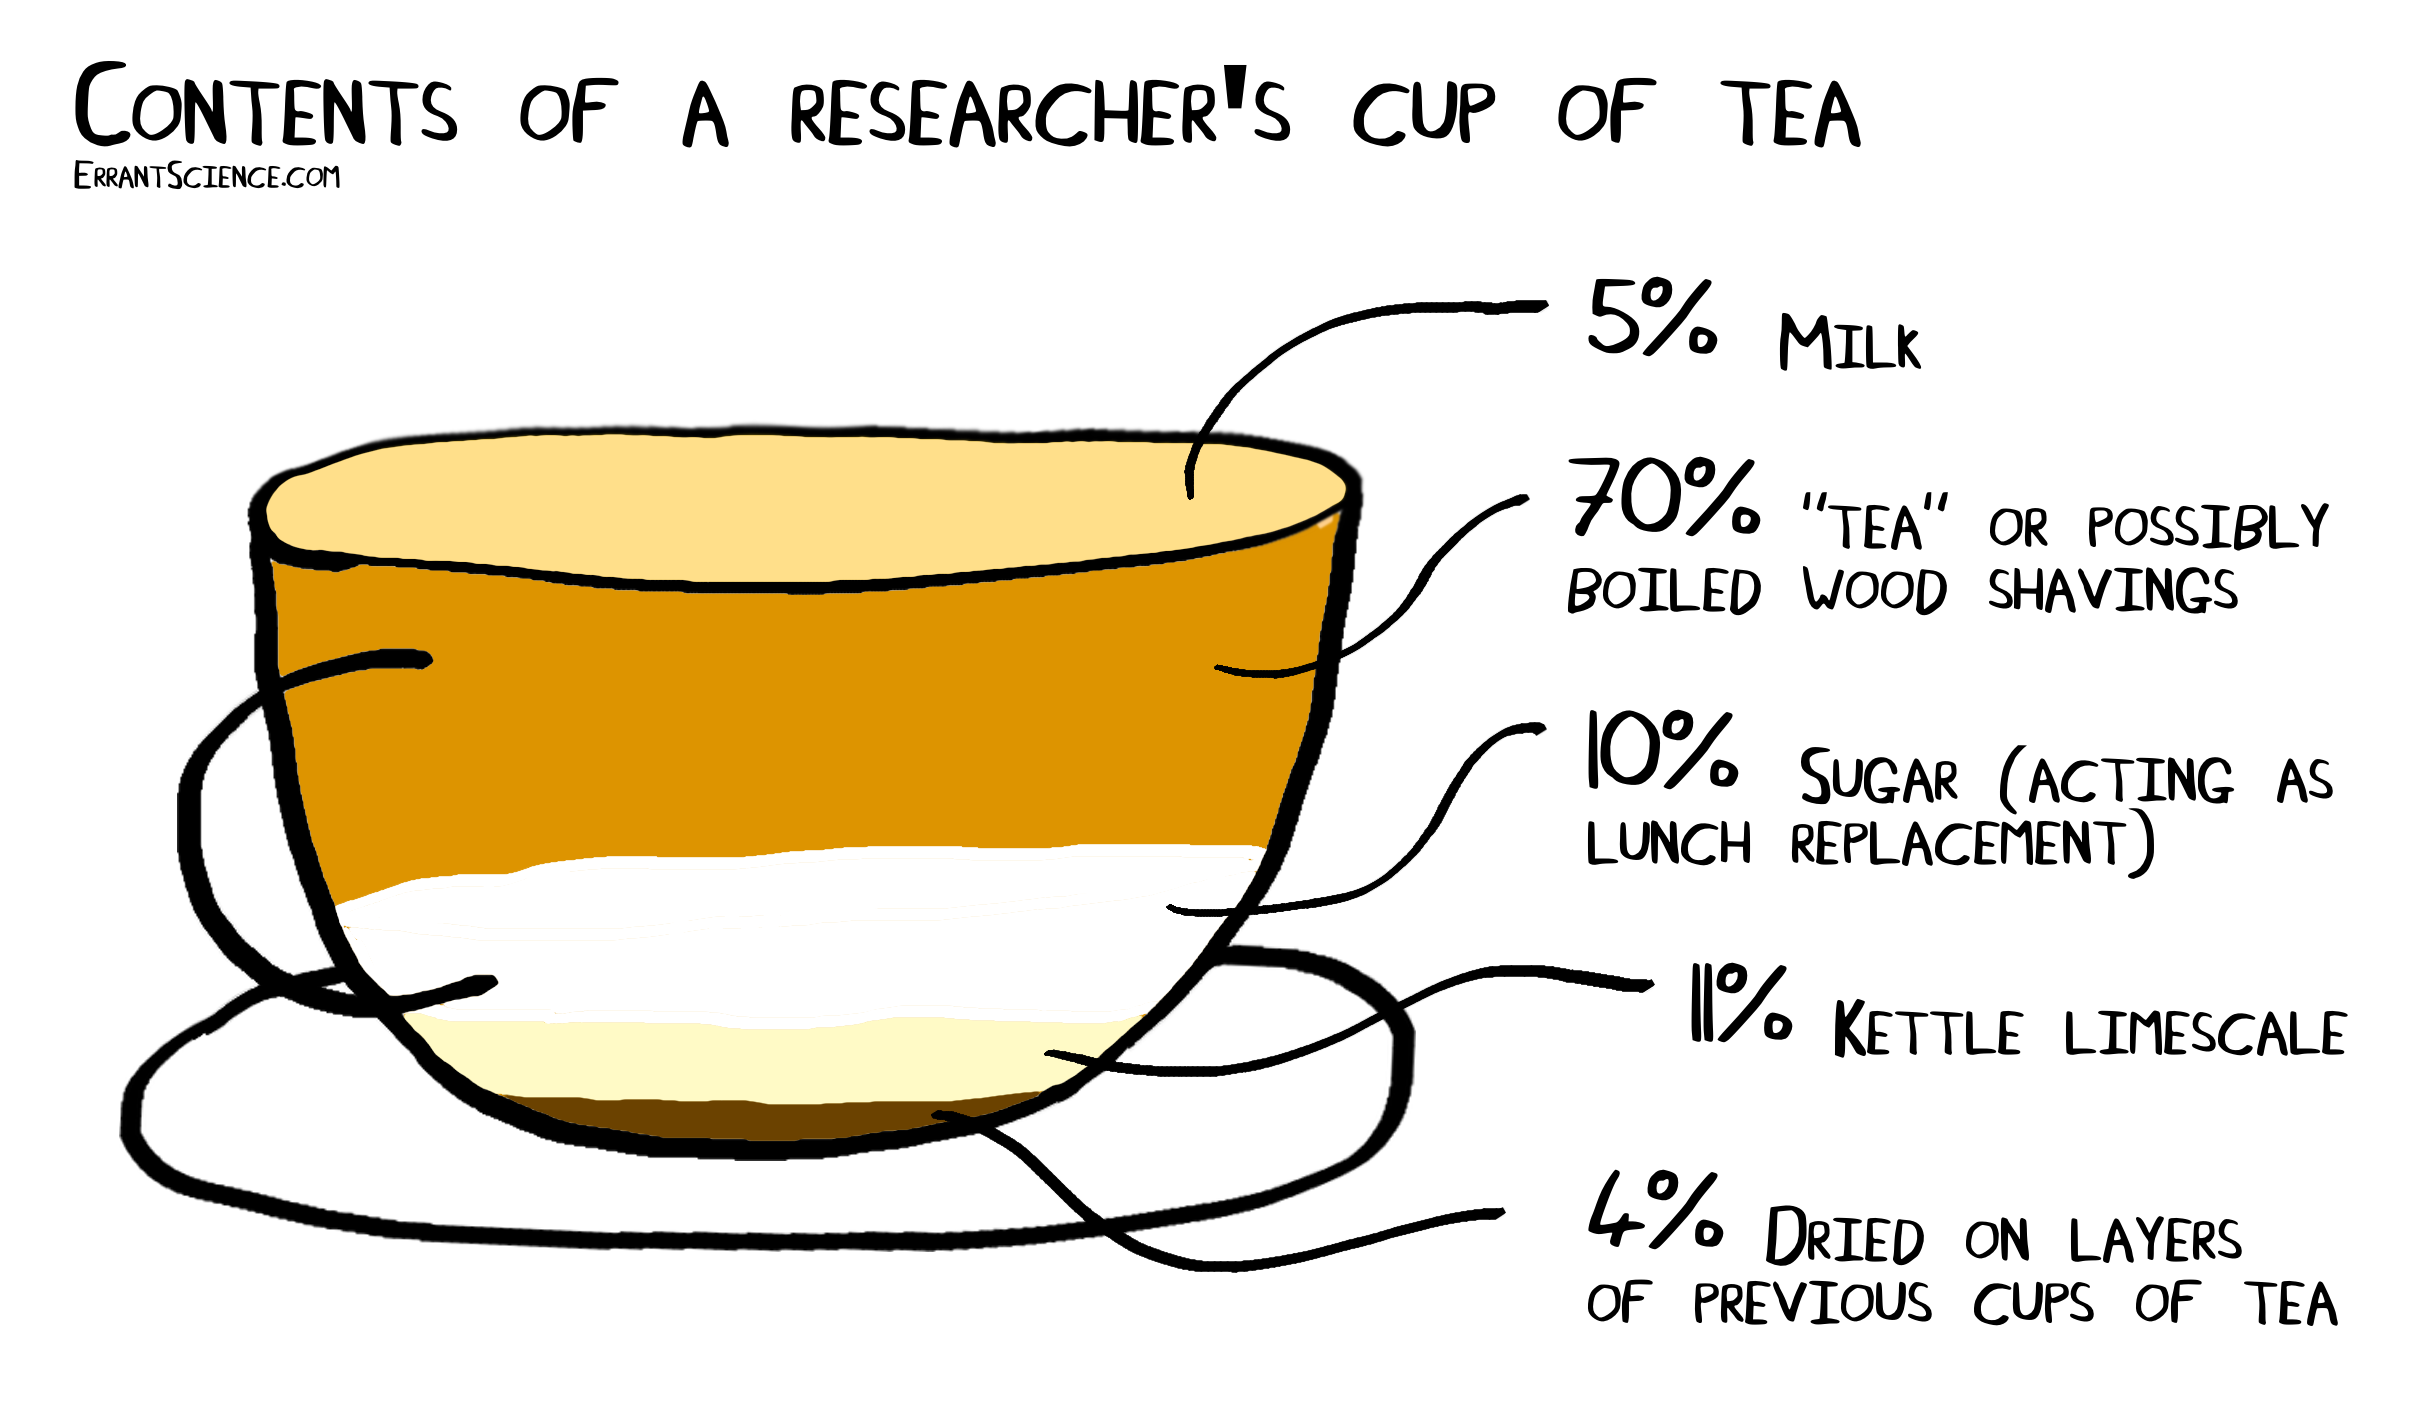 How To Make A Cup Of Tea In Research Office Errantscience